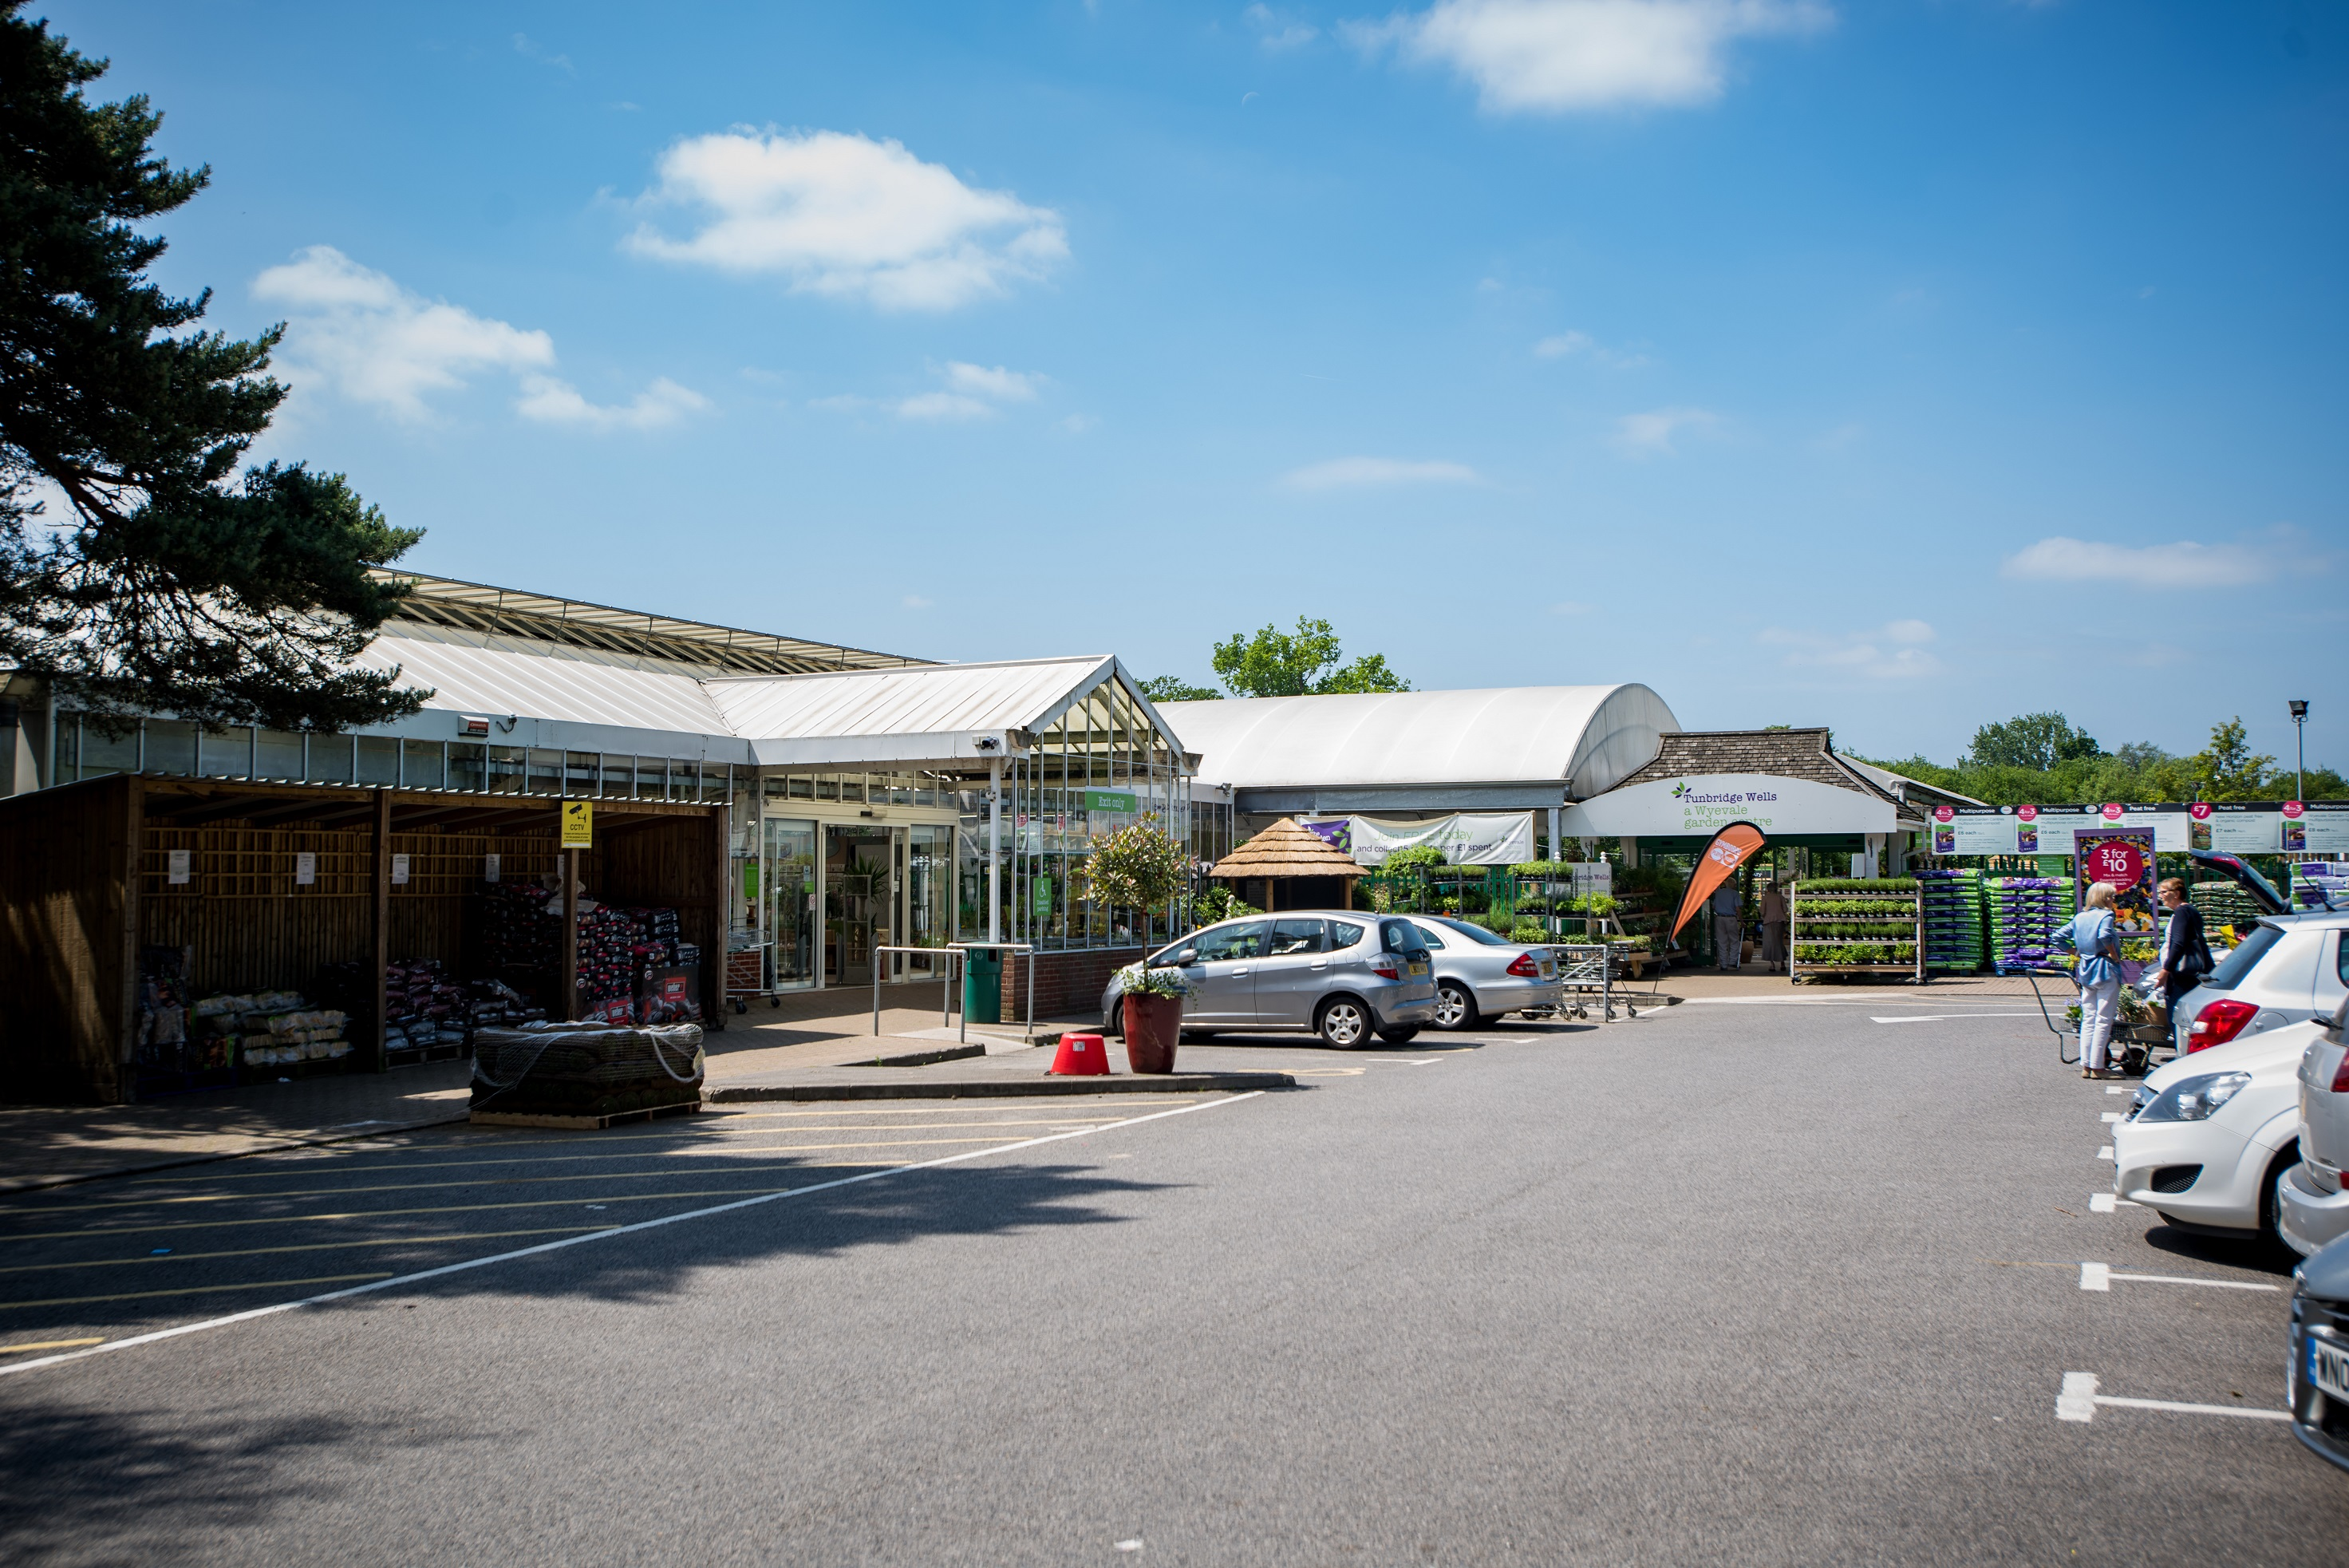 Garden centre for sale to those with a handy £5million